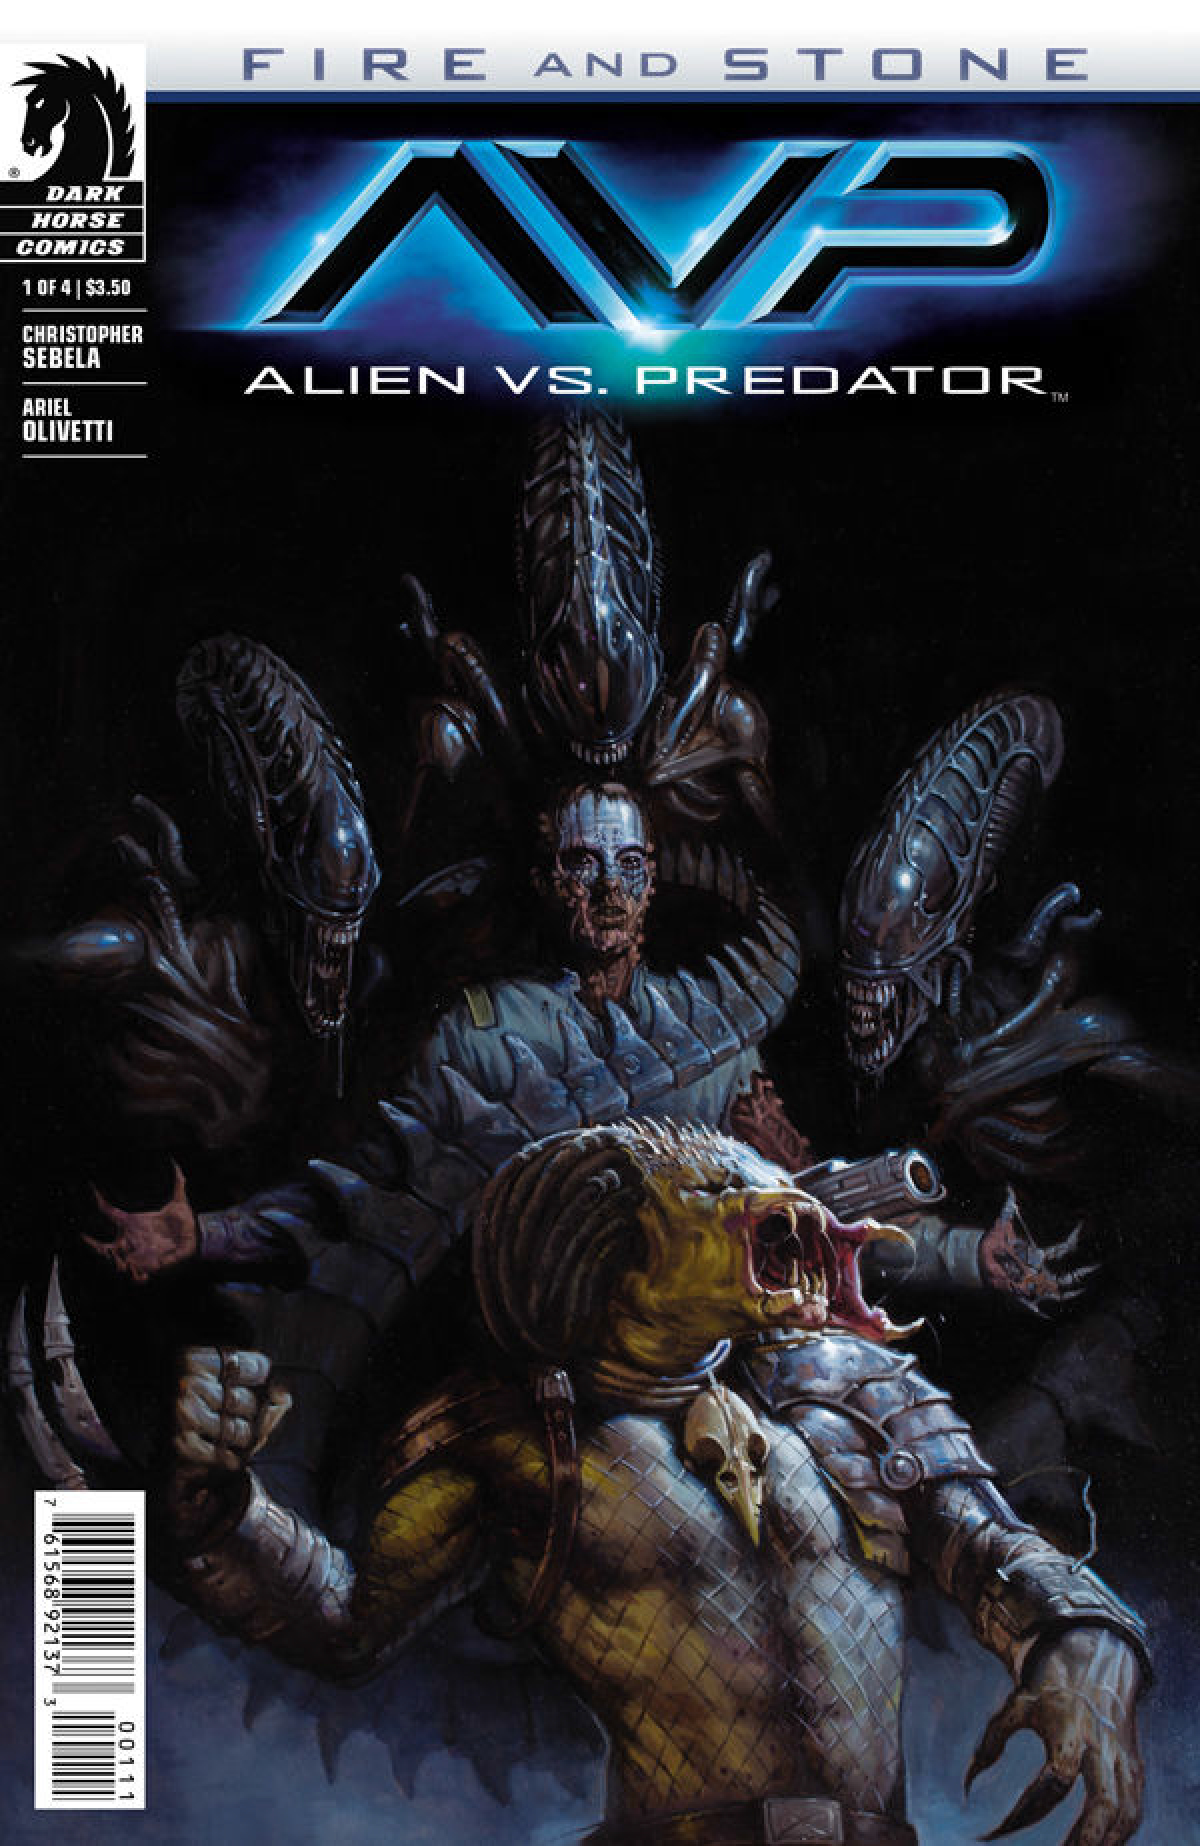 ALIEN VS PREDATOR FIRE AND STONE #1